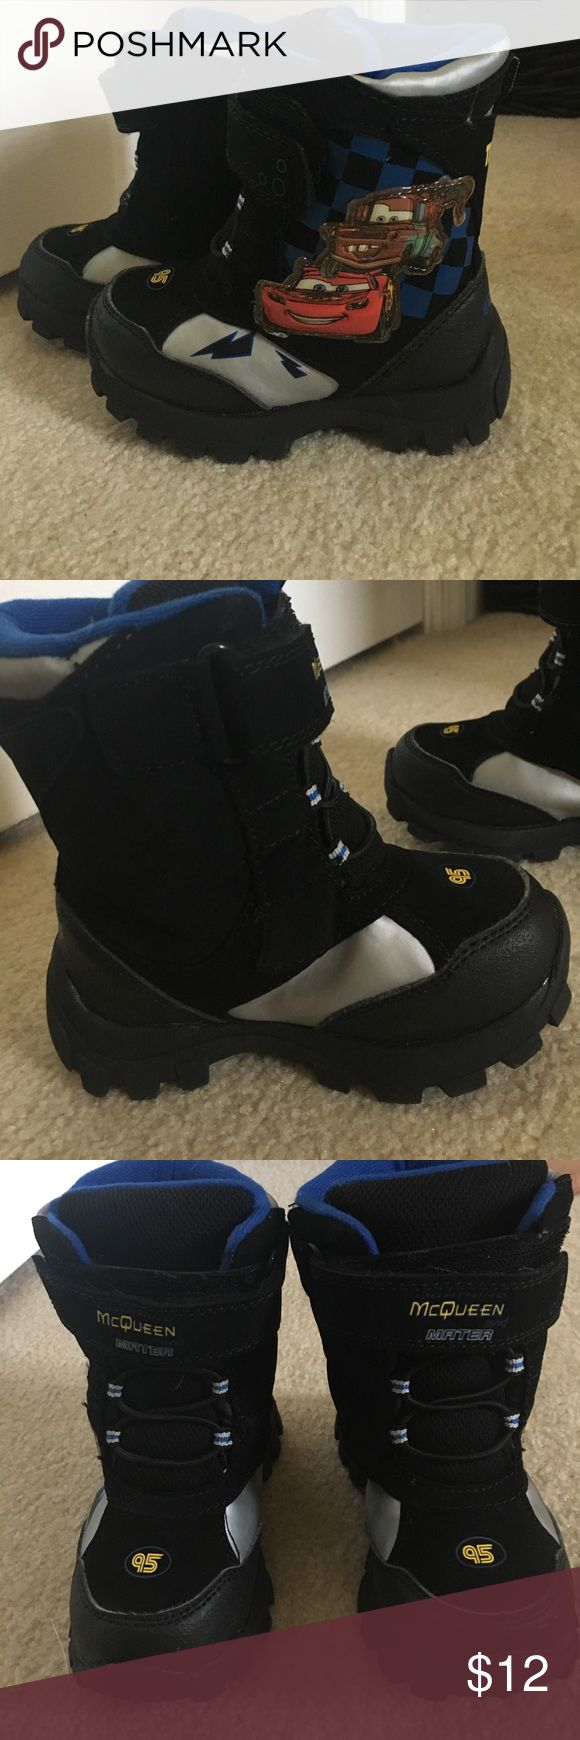 Toddler winter boots Lightening McQueen winter boots. Size M 7/8 worn once. Has great tread on bottom of boots and very warm Disney Shoes Rain & Snow Boots